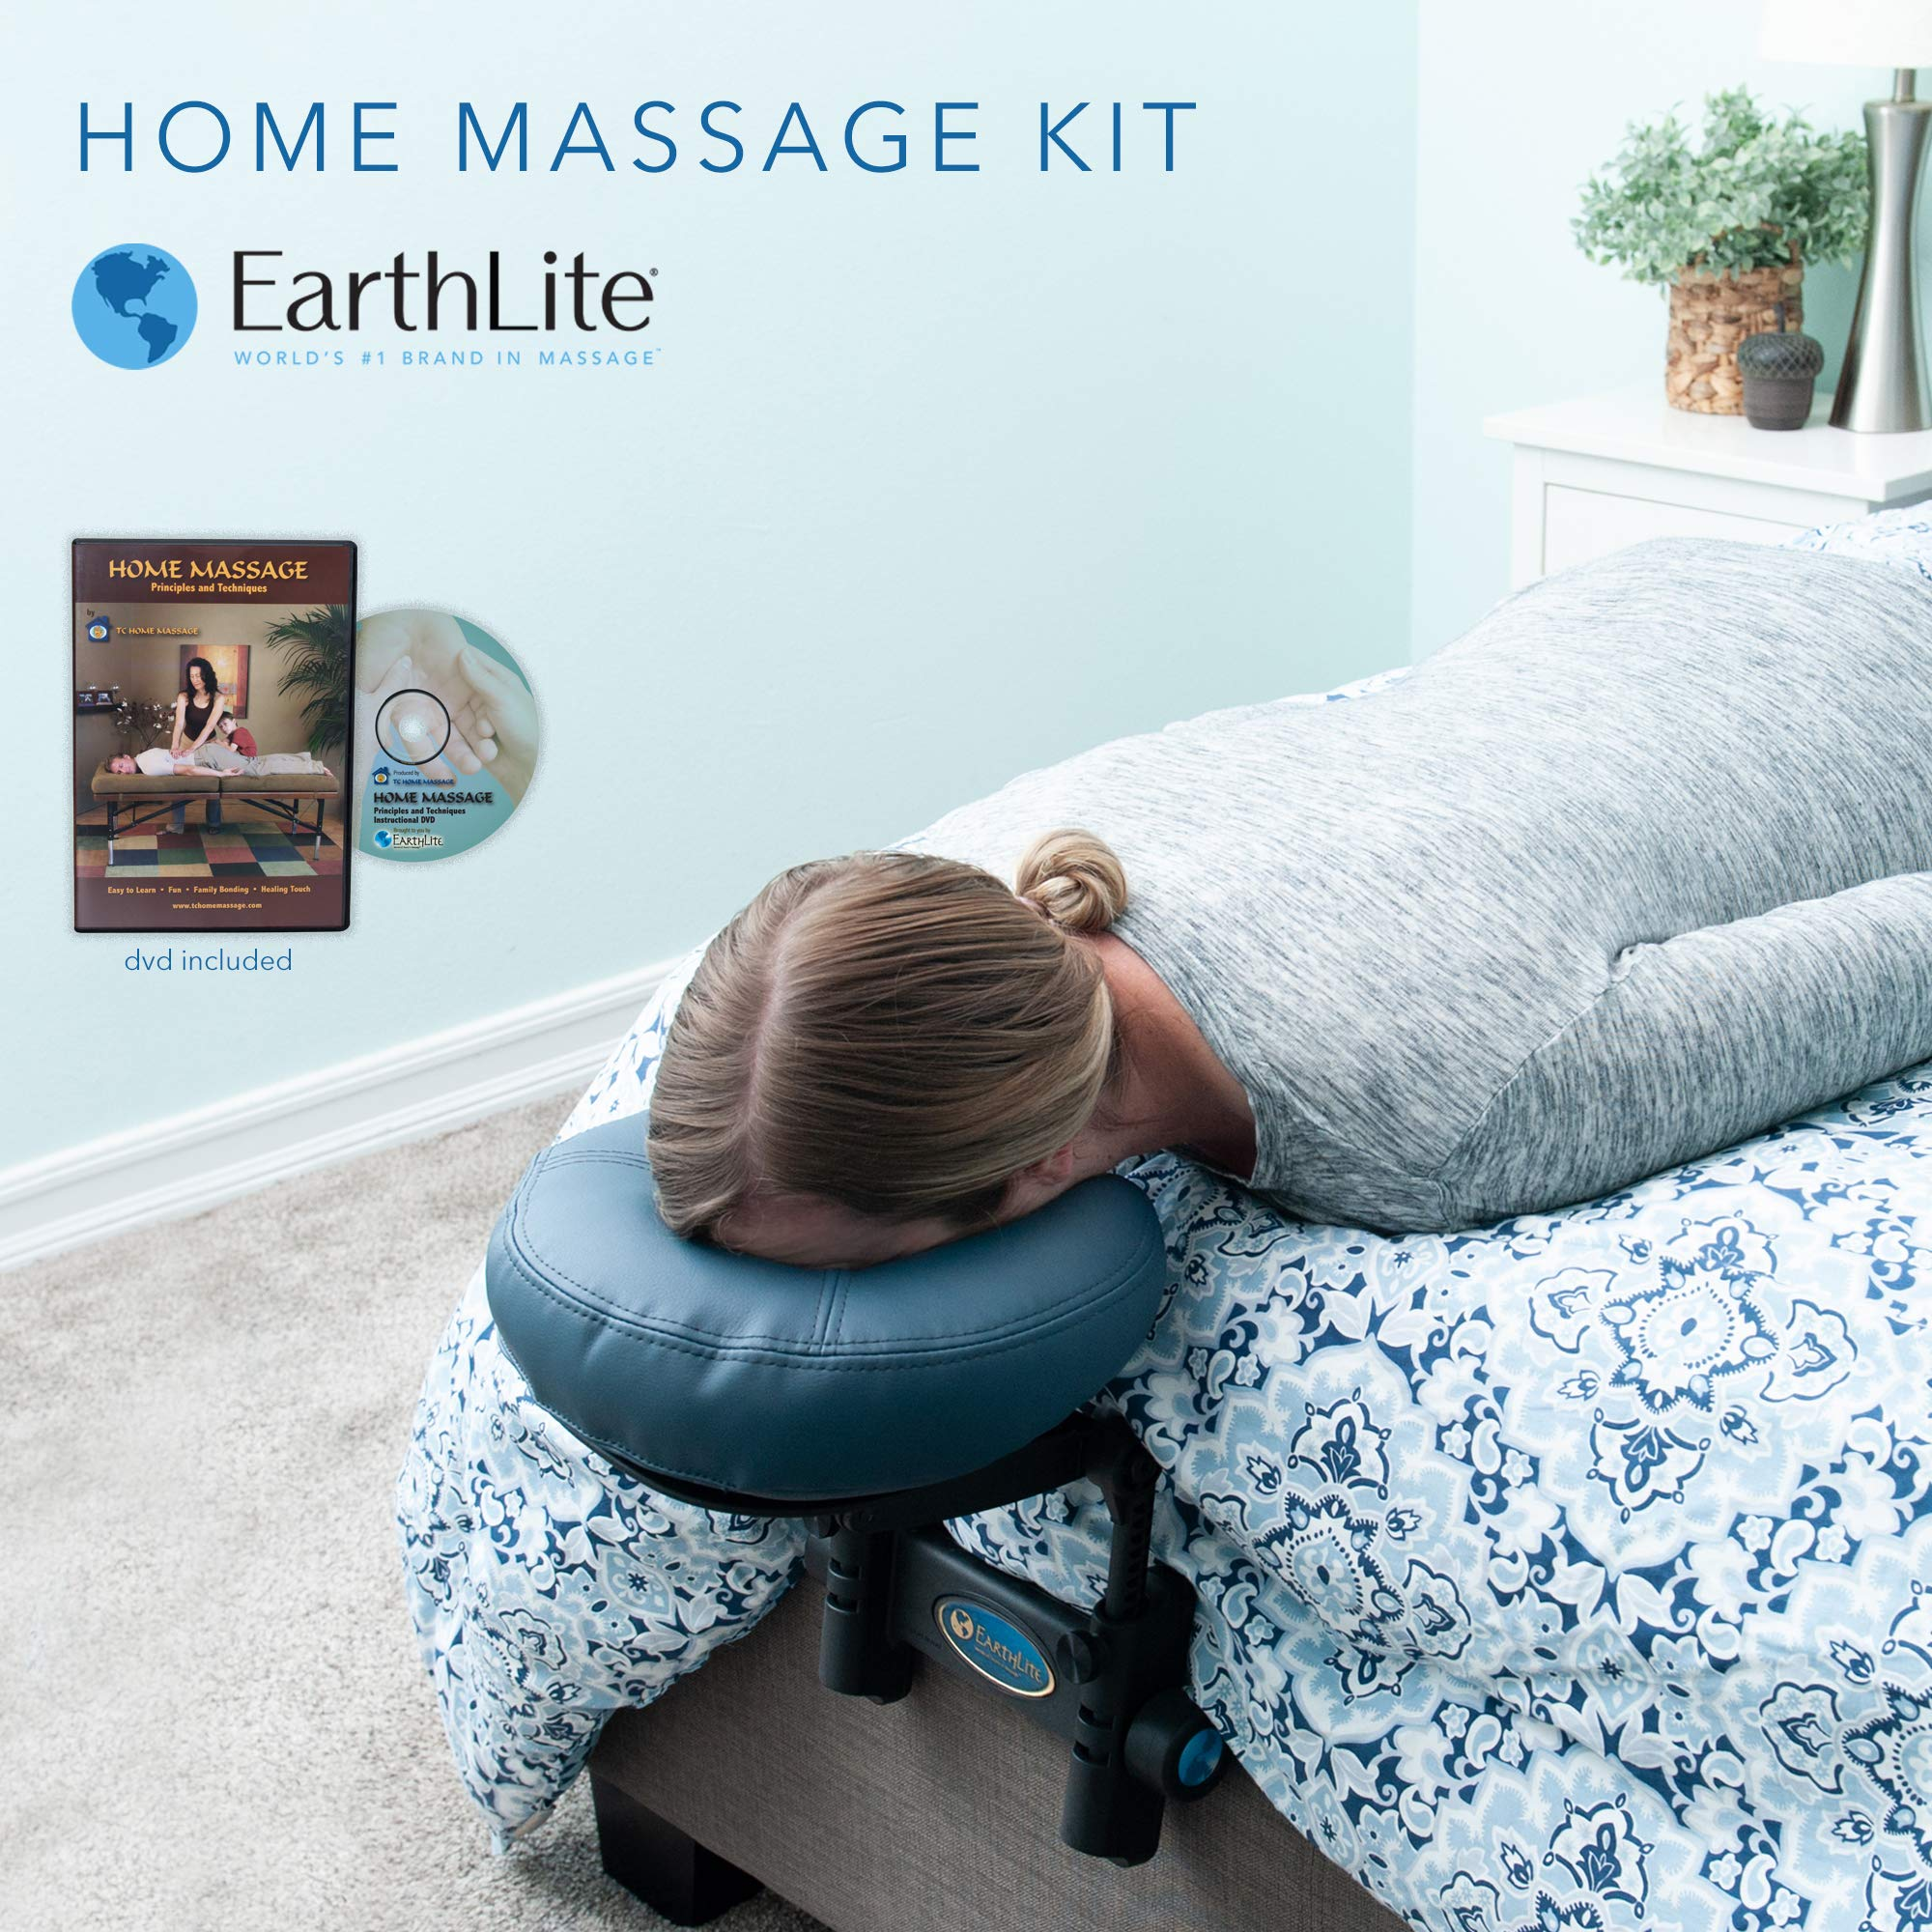 EARTHLITE Home Massage Kit - Deluxe Adjustable Headrest & Face Pillow / Home & Family Massage Made Easy with instructional DVD by EARTHLITE